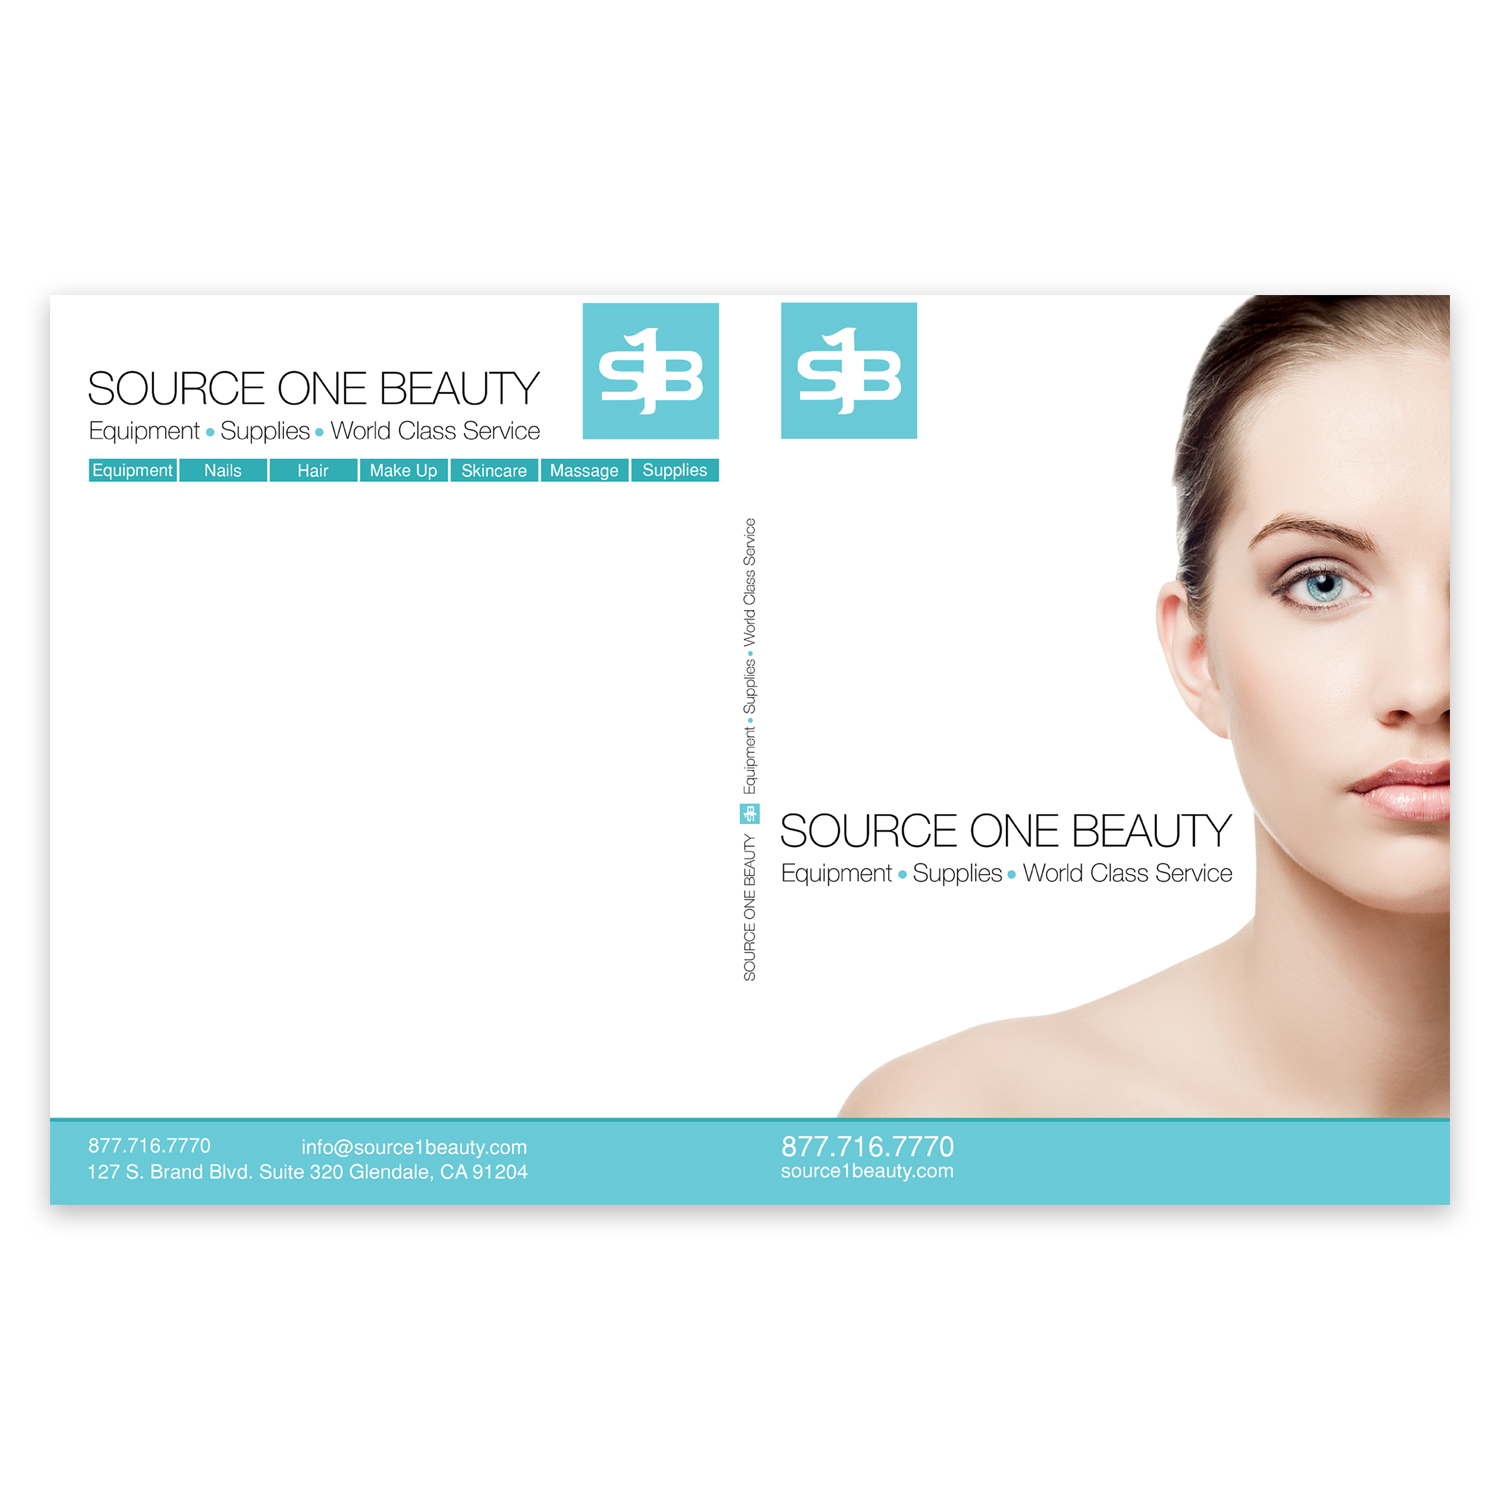 Source One Beauty Magazine Cover